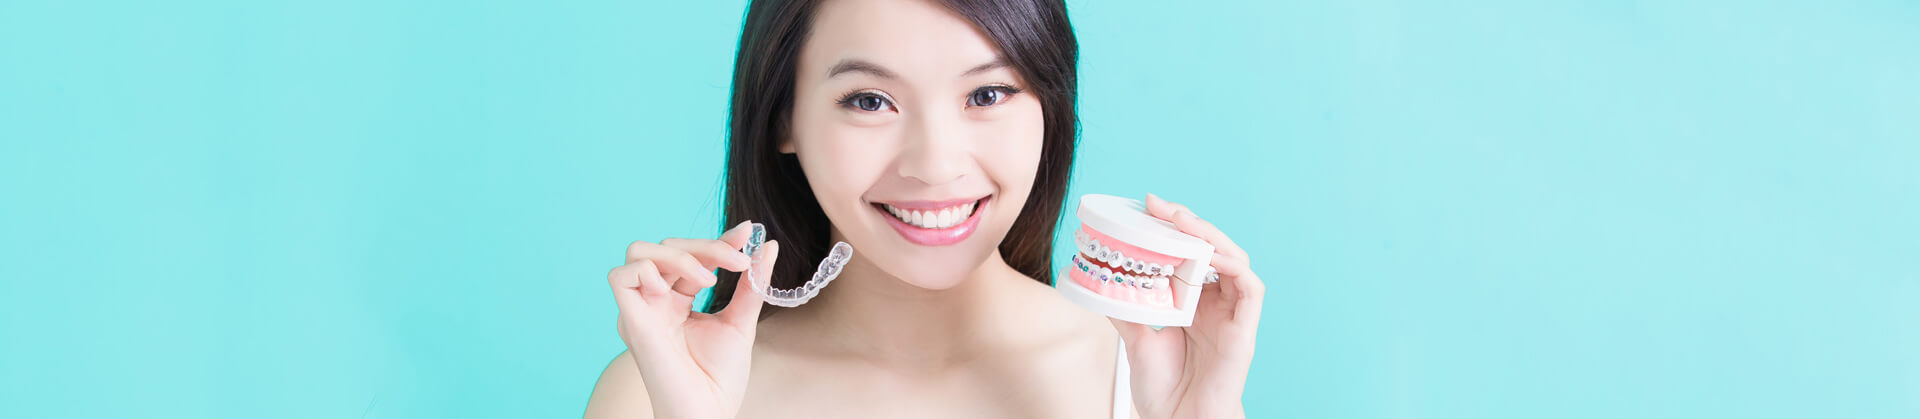 Closeup of woman holding invisalign bracers and a denture